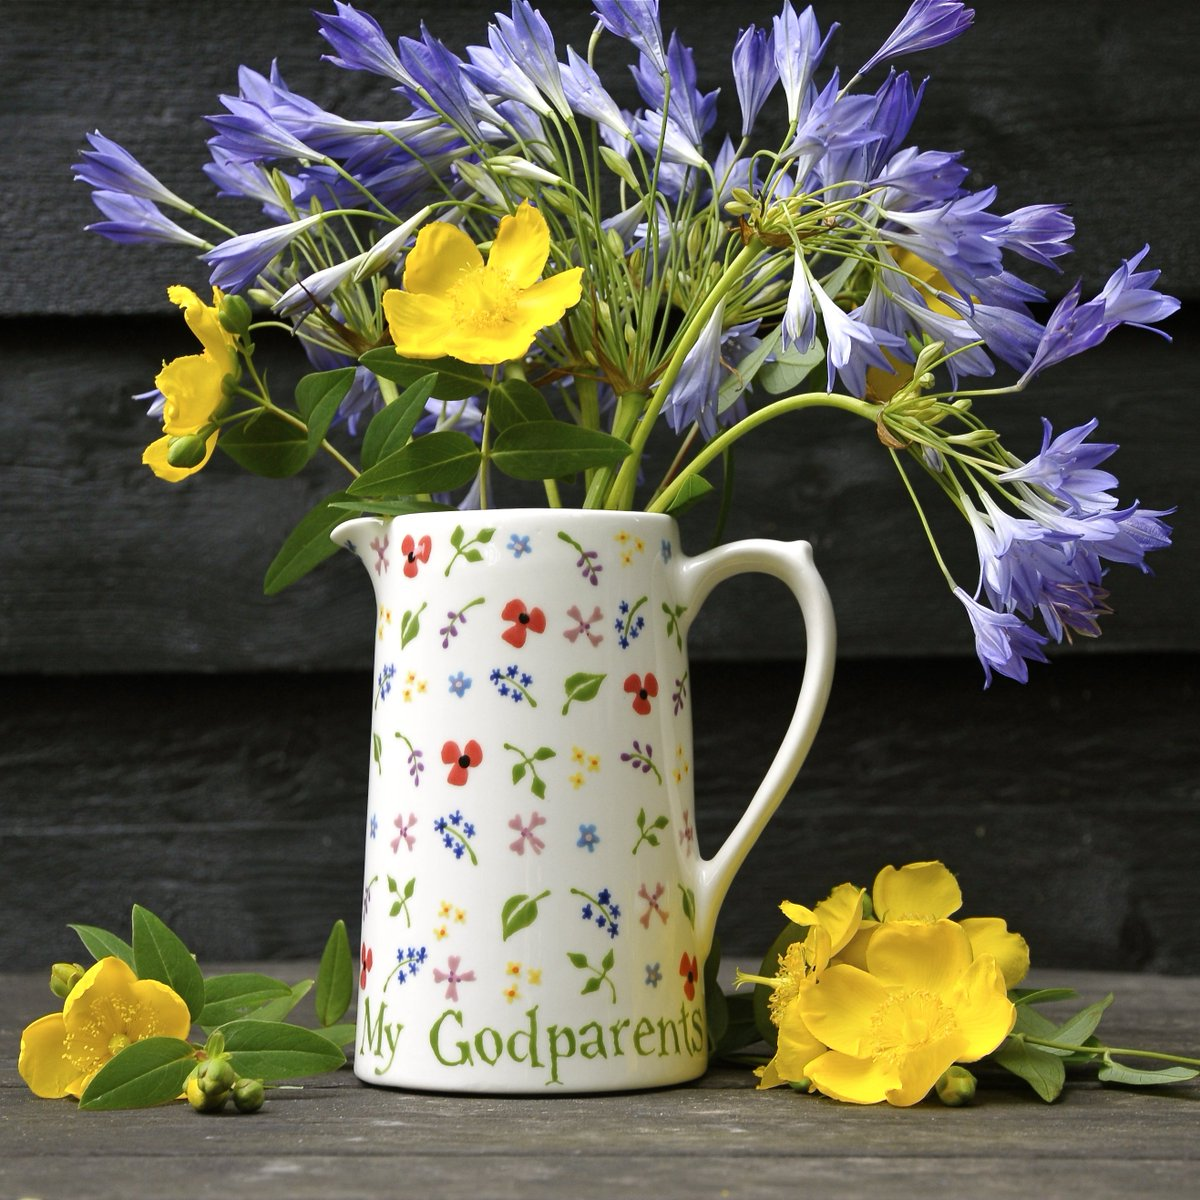 Personalised Wild Flowers Farmhouse Jug available on #etsy  https://www. etsy.com/uk/listing/496 311316/personalised-wild-flowers-farmhouse-jug?ref=shop_home_active_10 &nbsp; …  #EtsySeller #wildflowers #HandmadeHour #handmade #artisan<br>http://pic.twitter.com/NUIlLNsyif